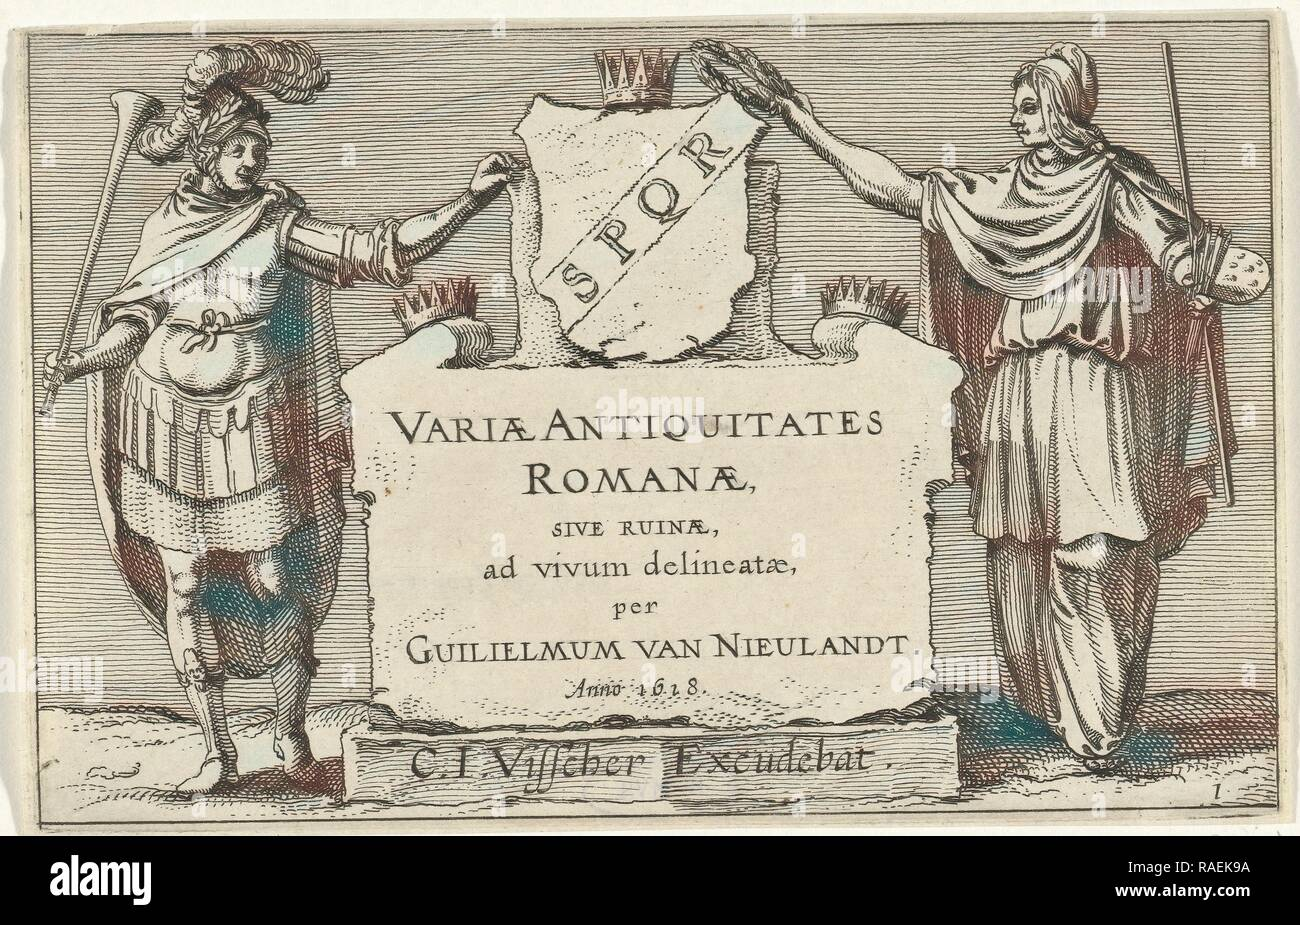 Fame and Arts besides a monumental stone, Anonymous, Claes Jansz. Visscher (II), 161. Reimagined by Gibon. Classic reimagined - Stock Image